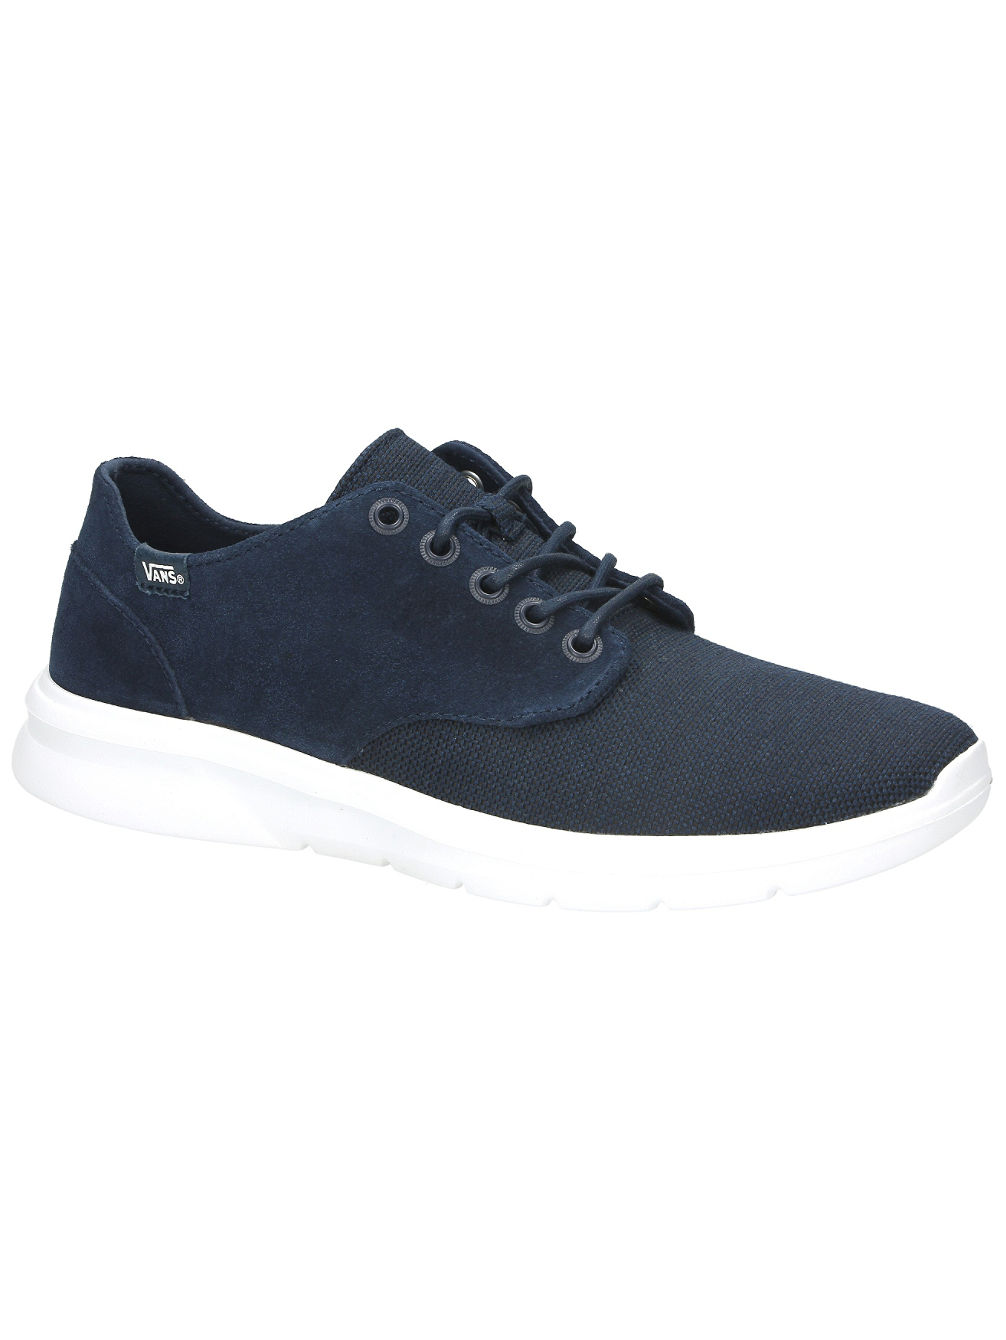 2134ec5fe4f3 Buy Vans Prime Iso 2 Sneakers online at Blue Tomato